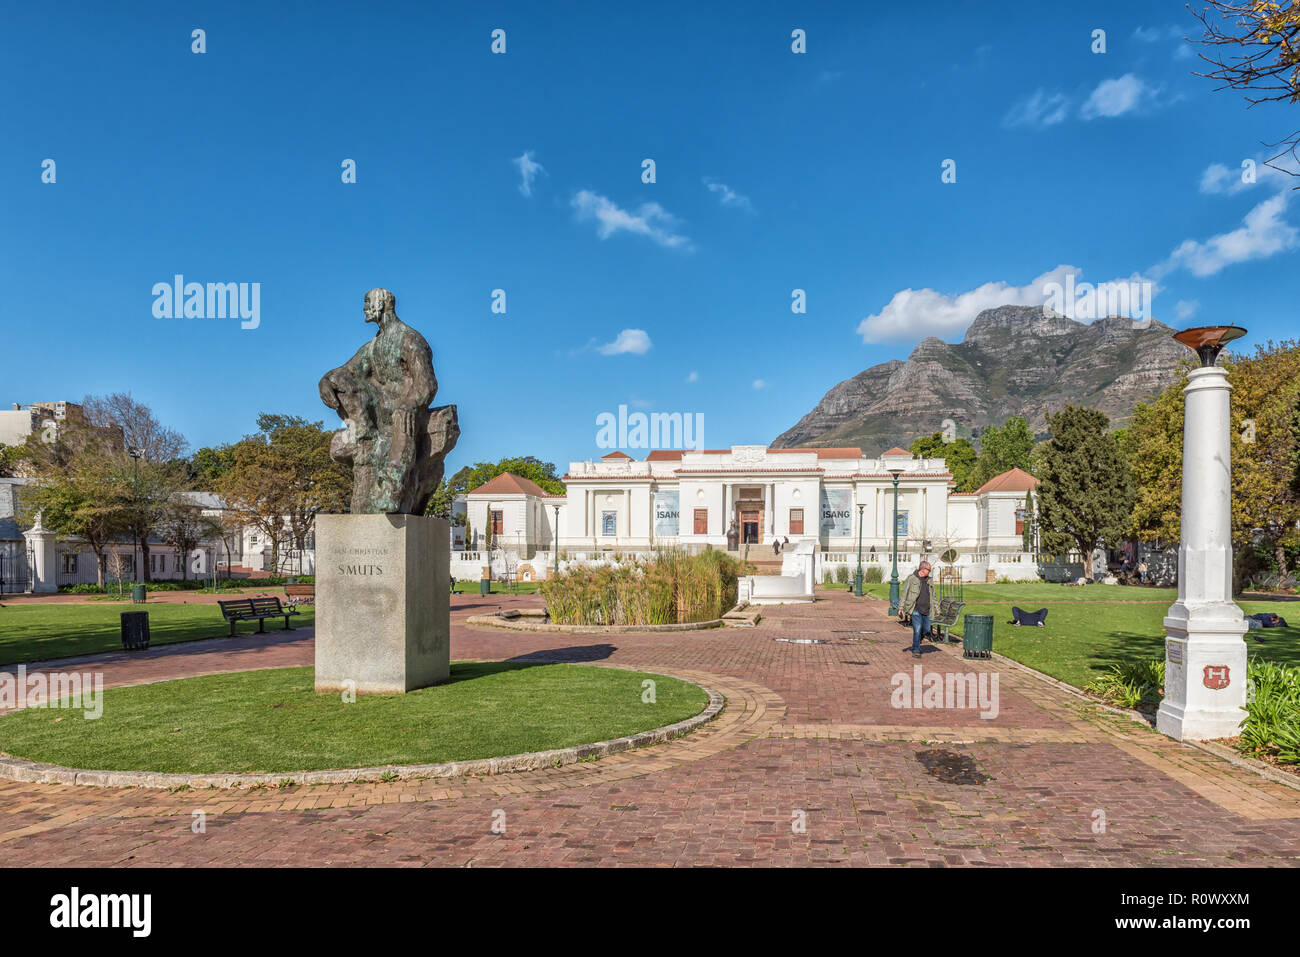 CAPE TOWN, SOUTH AFRICA, AUGUST 17, 2018: The South African National Gallery, with a statue of General Jan Smuts in front, at the Company Gardens in C - Stock Image